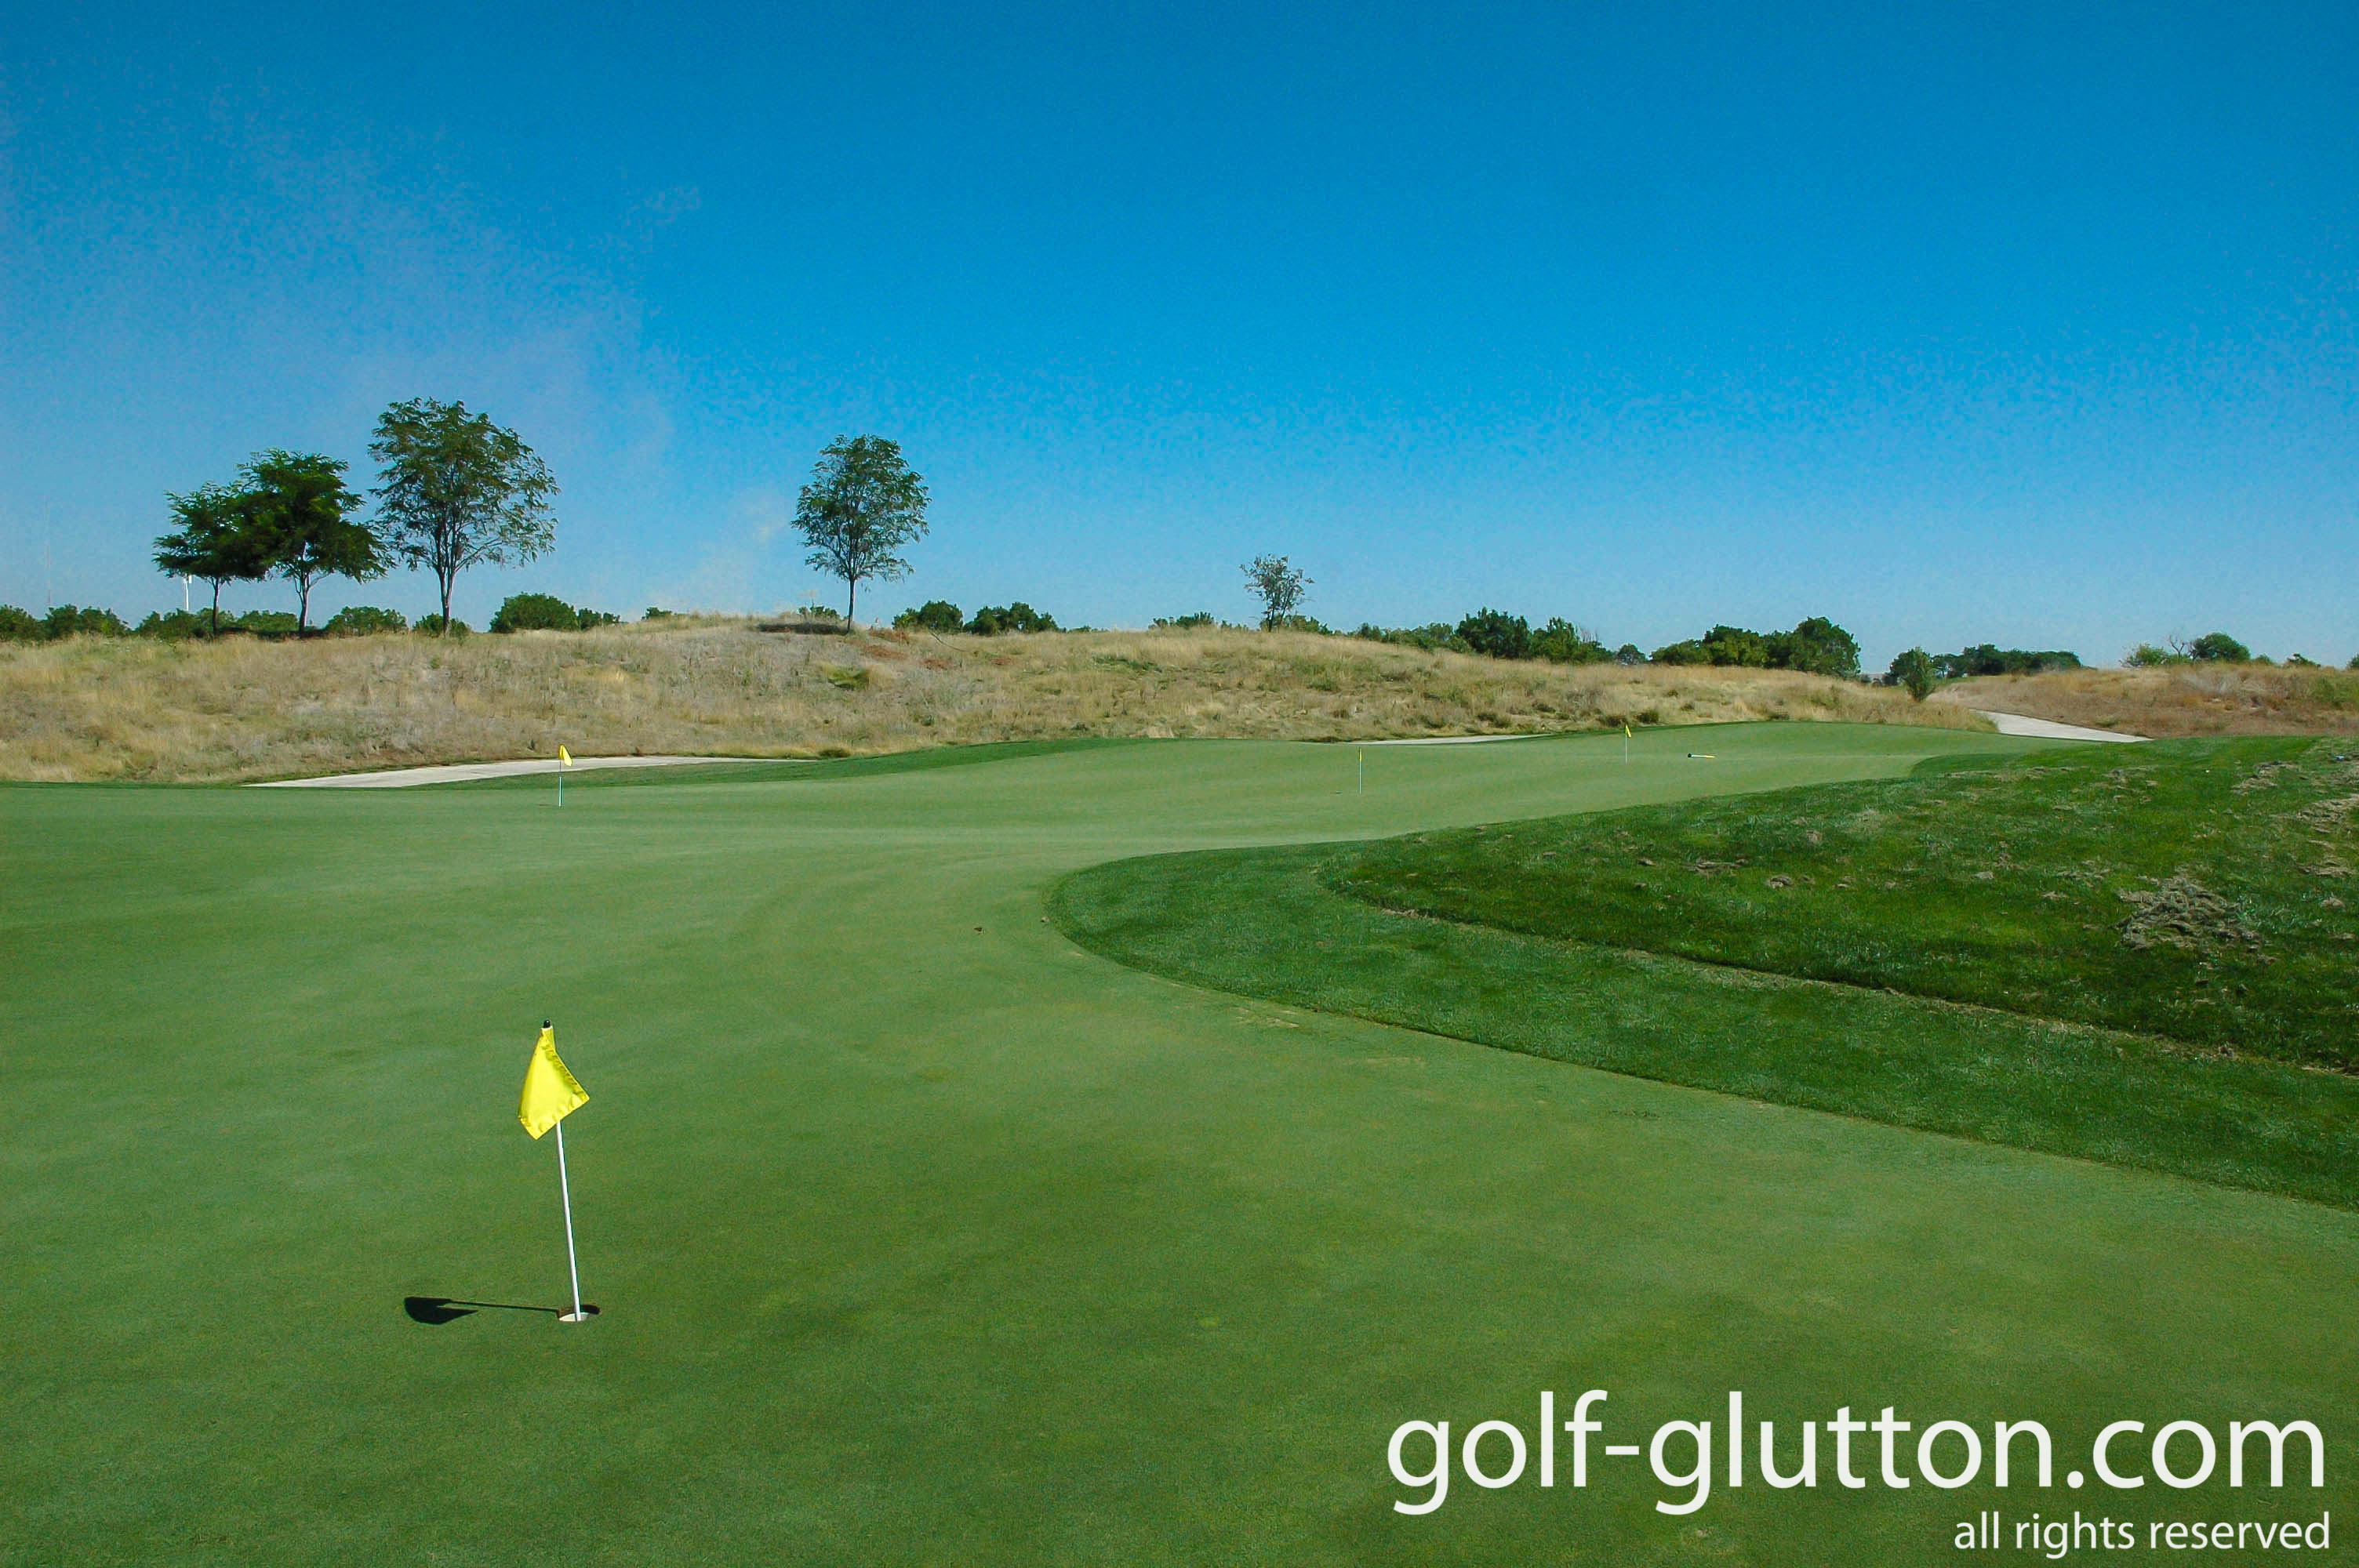 ca | Golfglutton